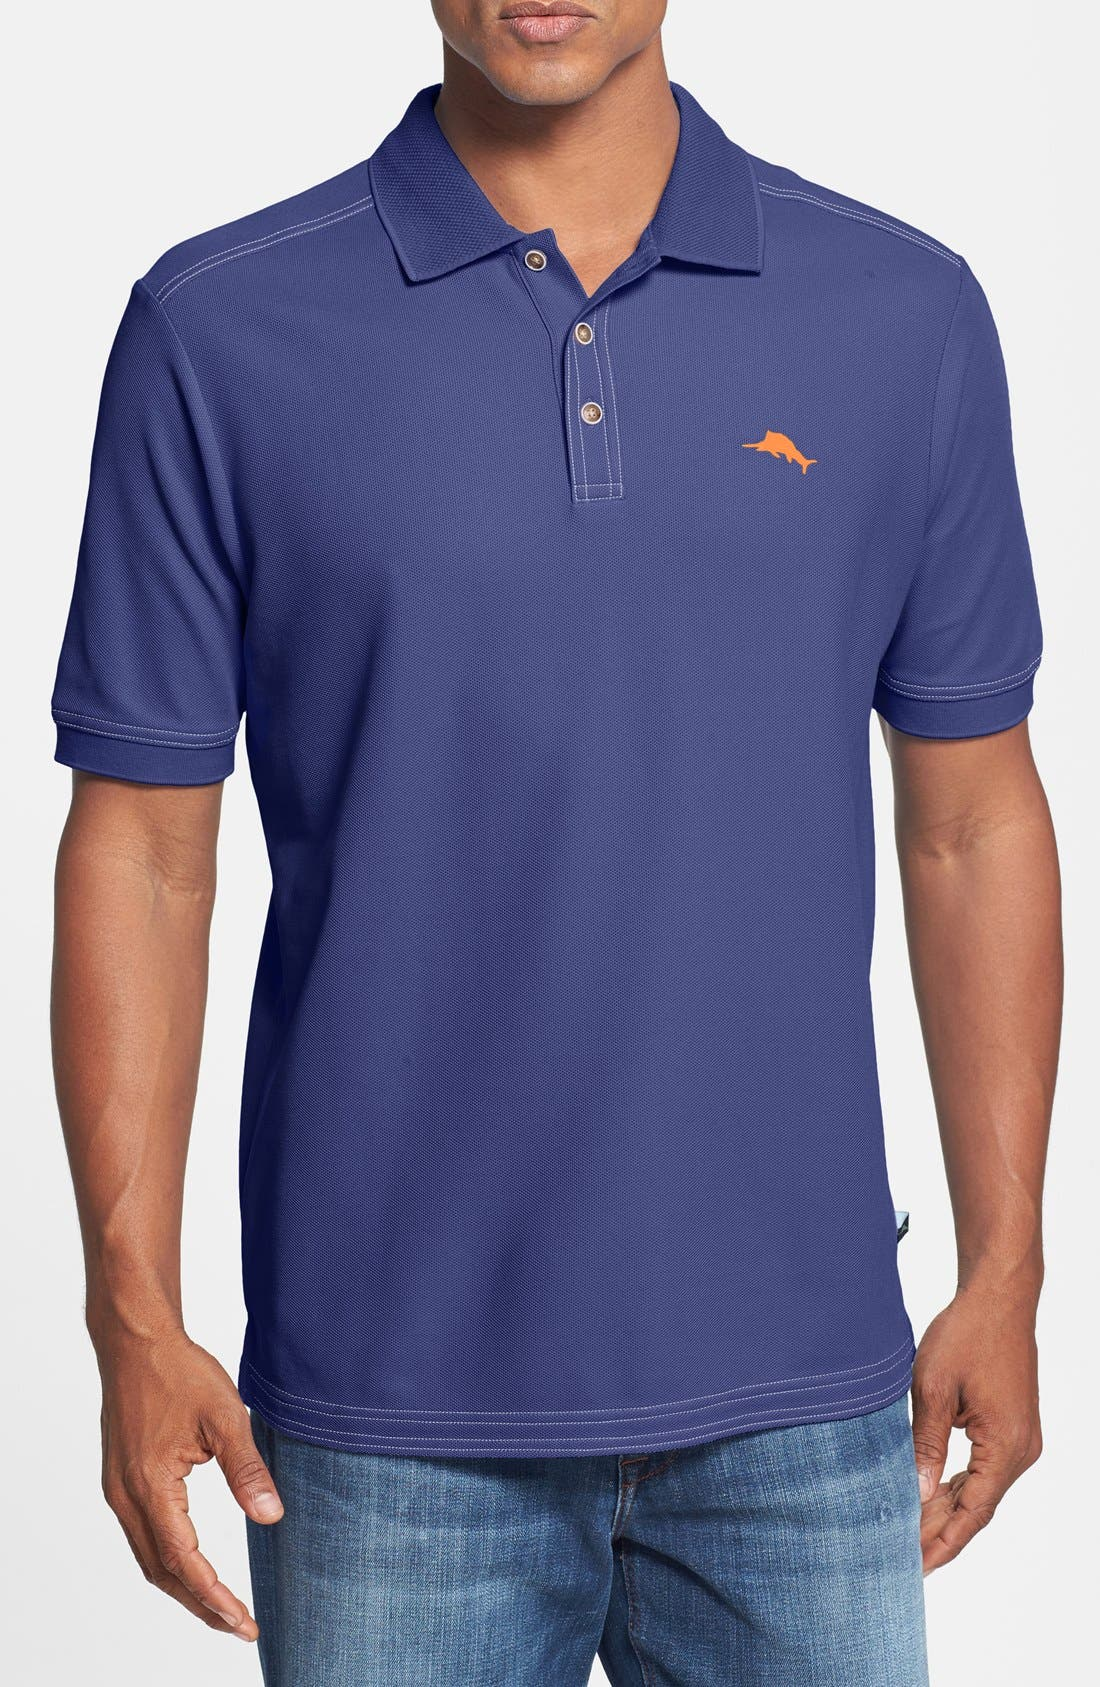 'The Emfielder' Original Fit Piqué Polo,                             Main thumbnail 63, color,